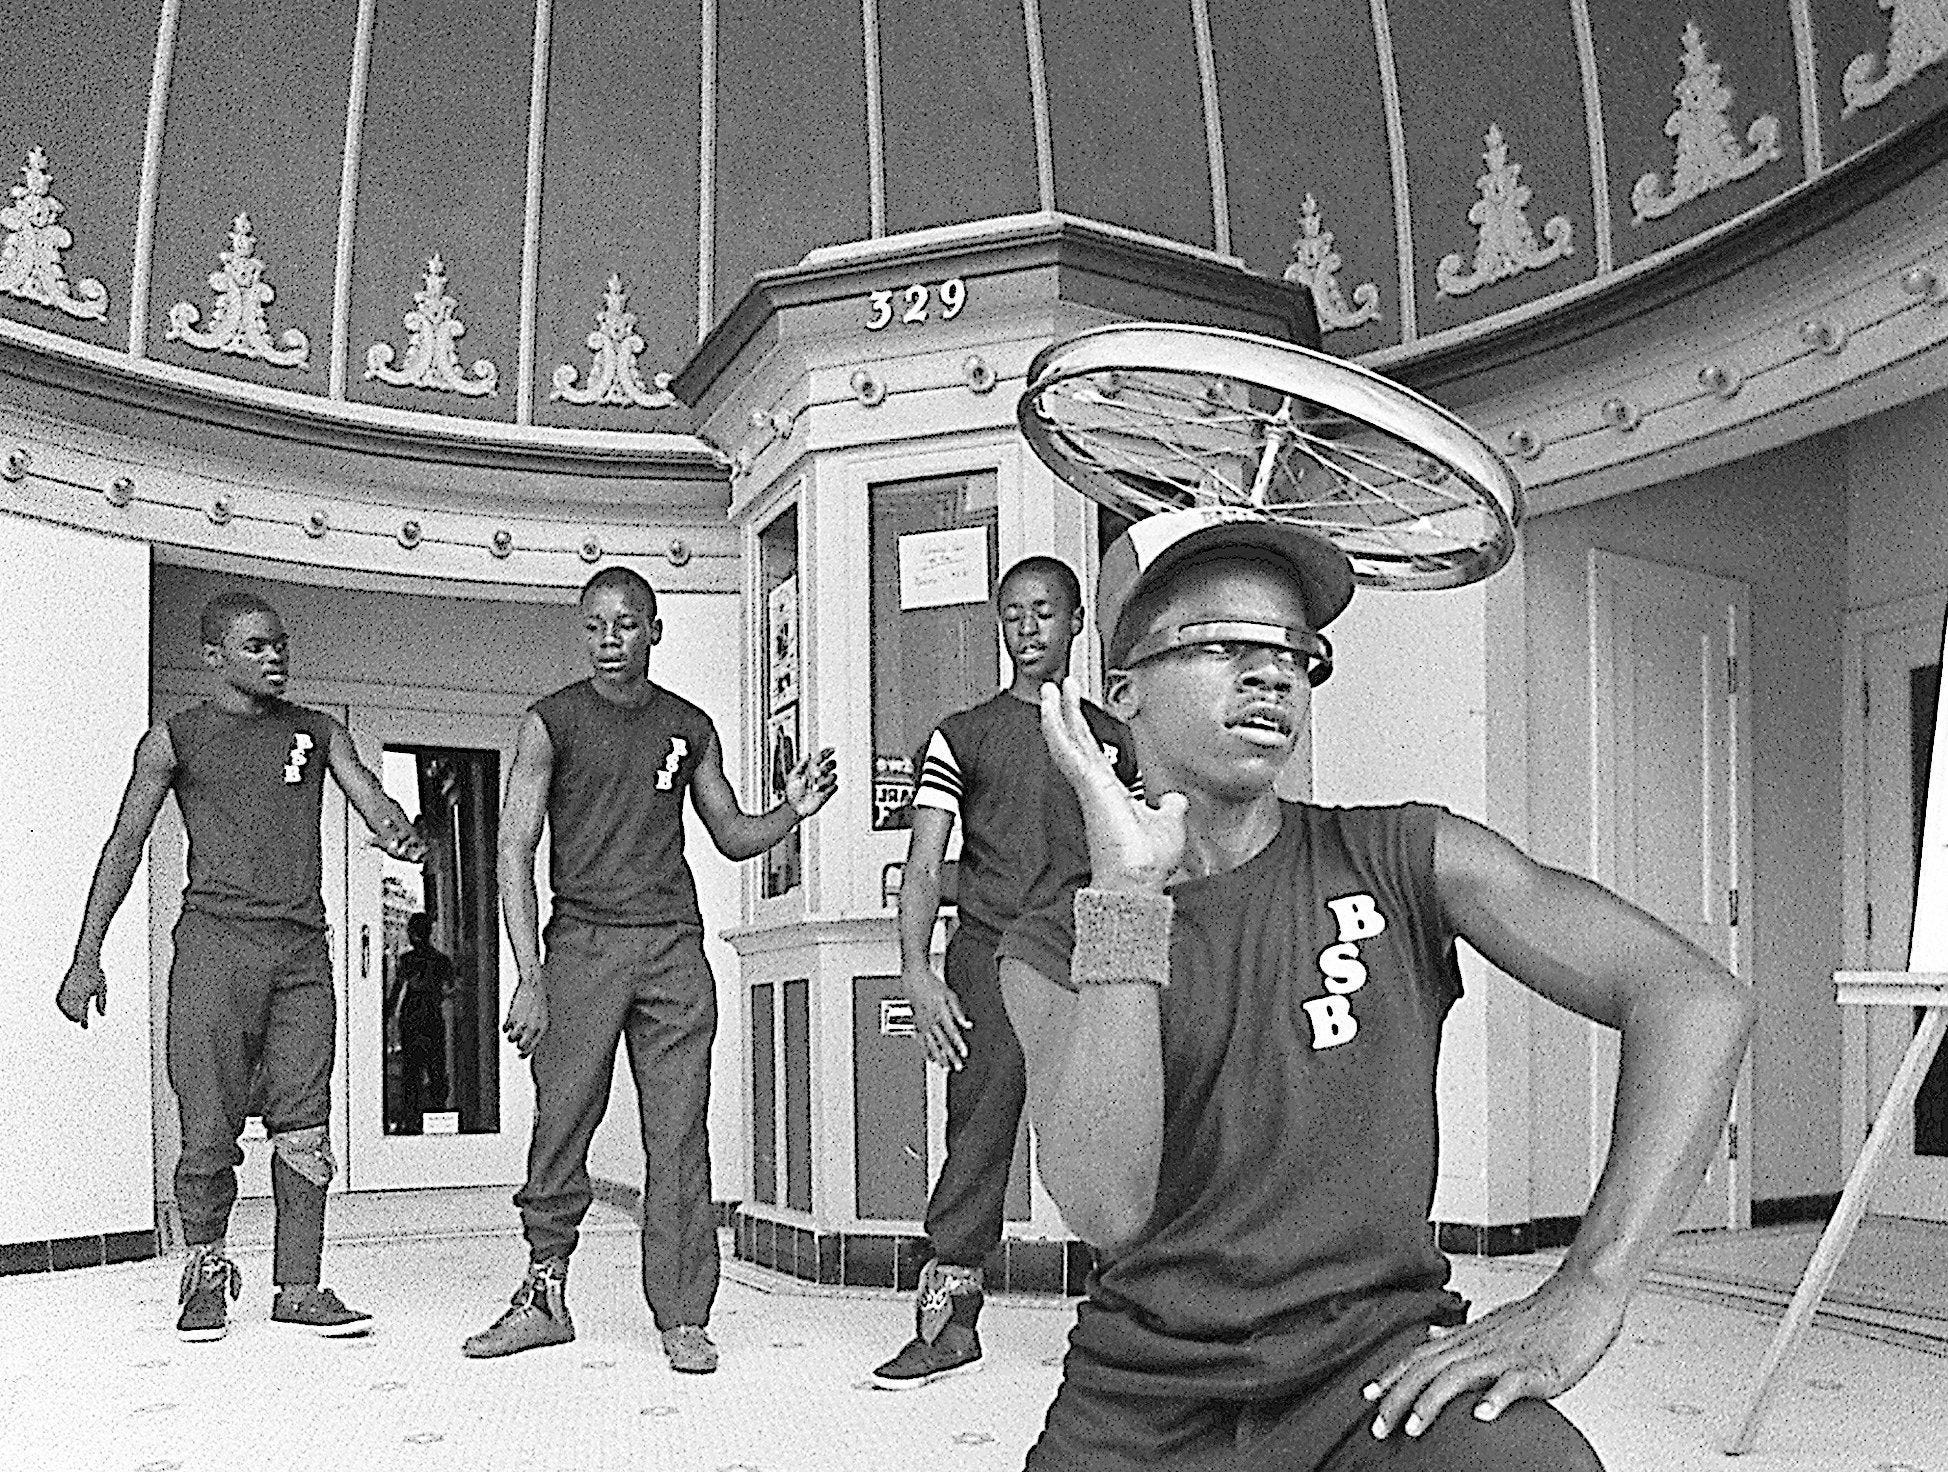 The Old Daisy on Beale Street Breakers prepare for a date at the Halls, Tenn., annual Street Festival in June 1984. Ready to dance are Lawrence Ash, front, and, from left, Anthony Askew, Ivan Lowe and Anthony Perry. Other Memphis performers include The Baffling Mr. Baker (not shown).